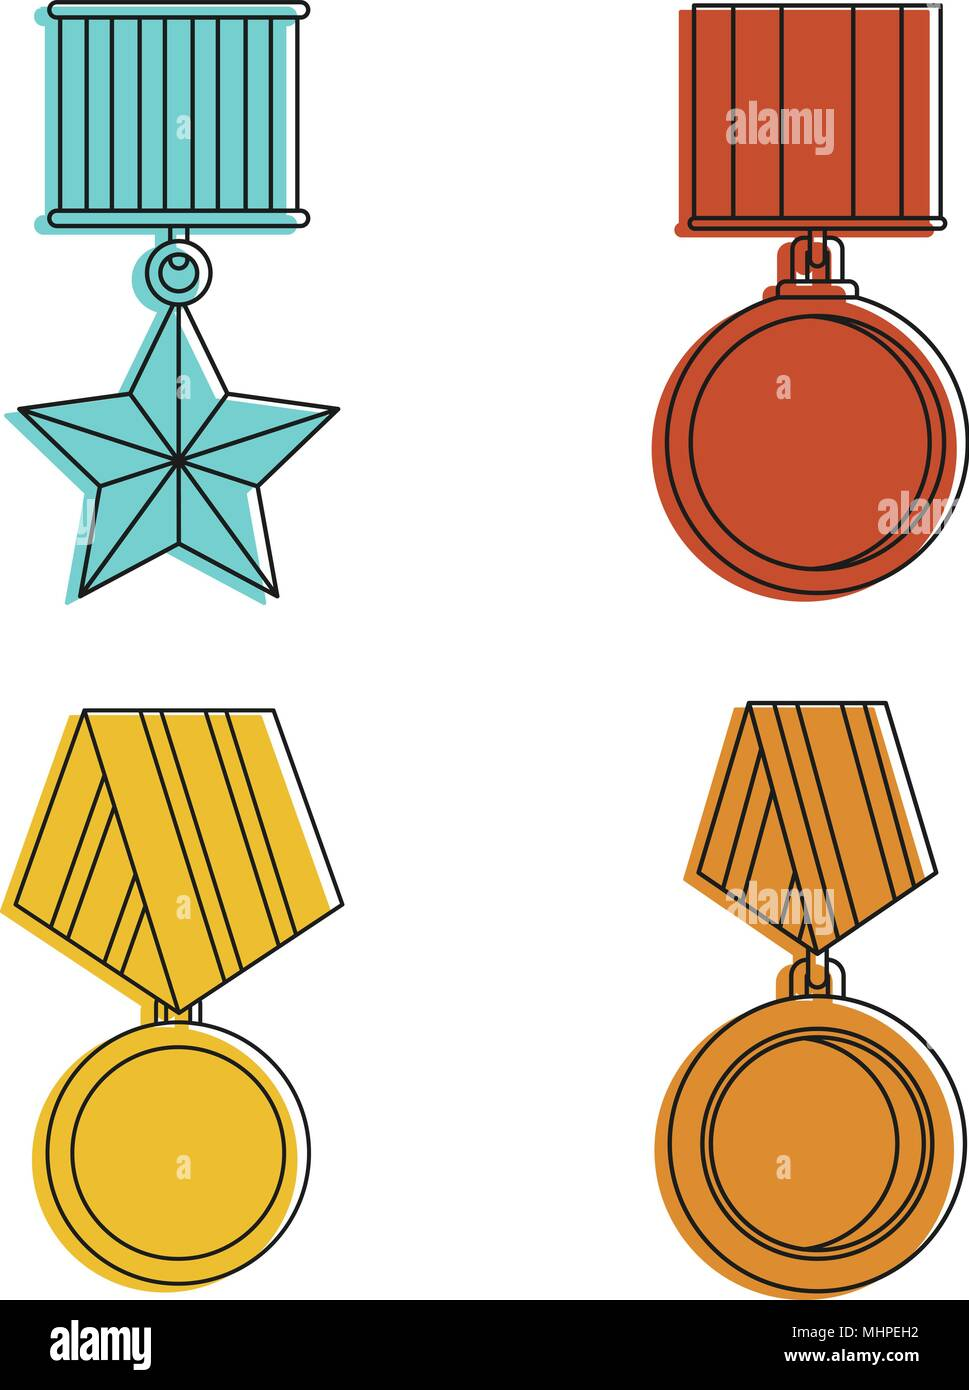 Army medal icon set, color outline style Stock Vector